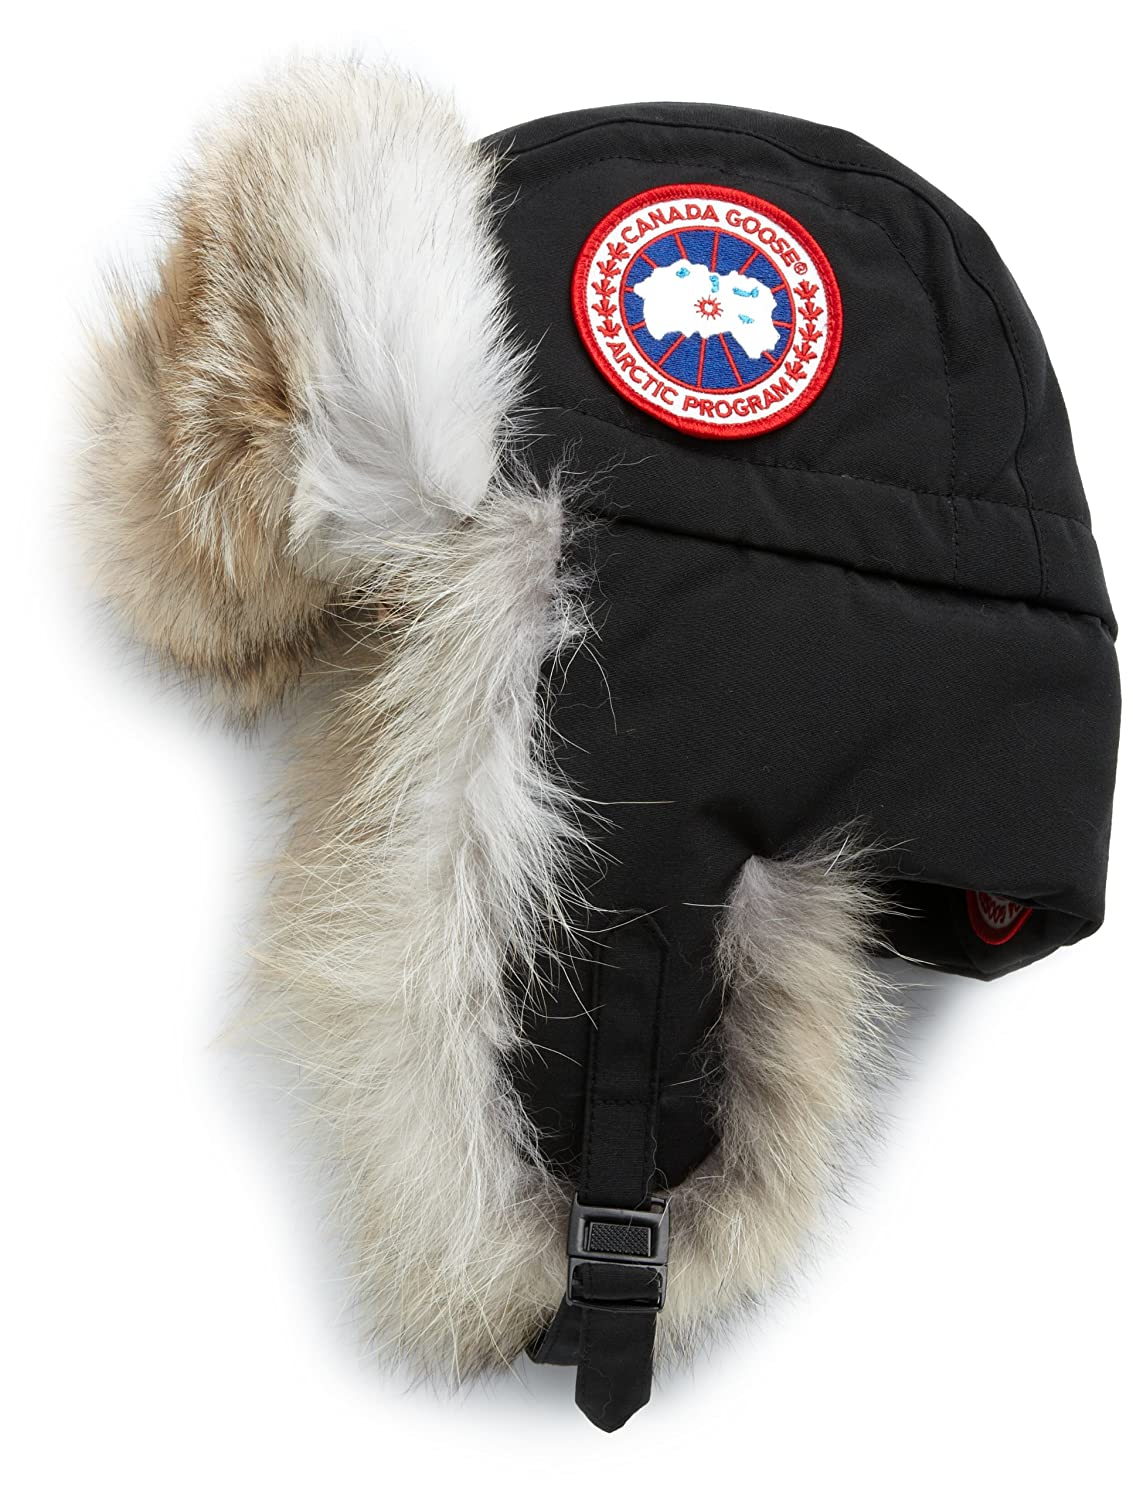 Canada Goose parka outlet official - Canada Goose Aviator Hat (Black, L/XL): Amazon.co.uk: Sports ...